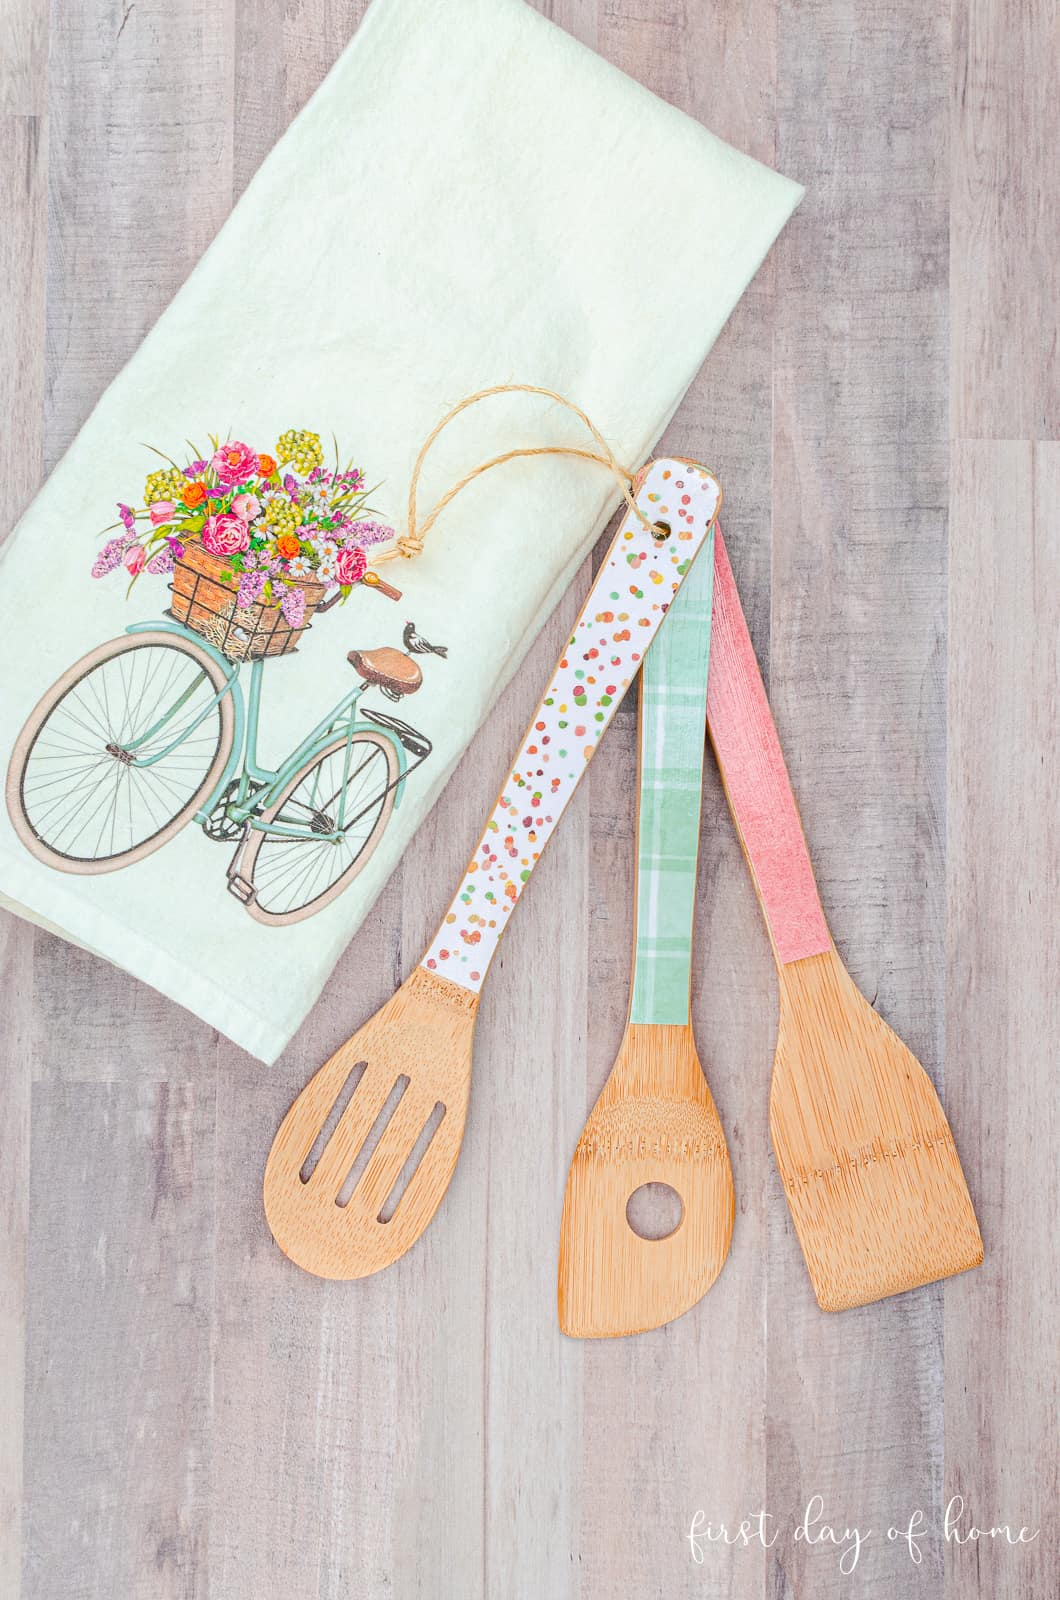 How to make decoupage wooden spoons